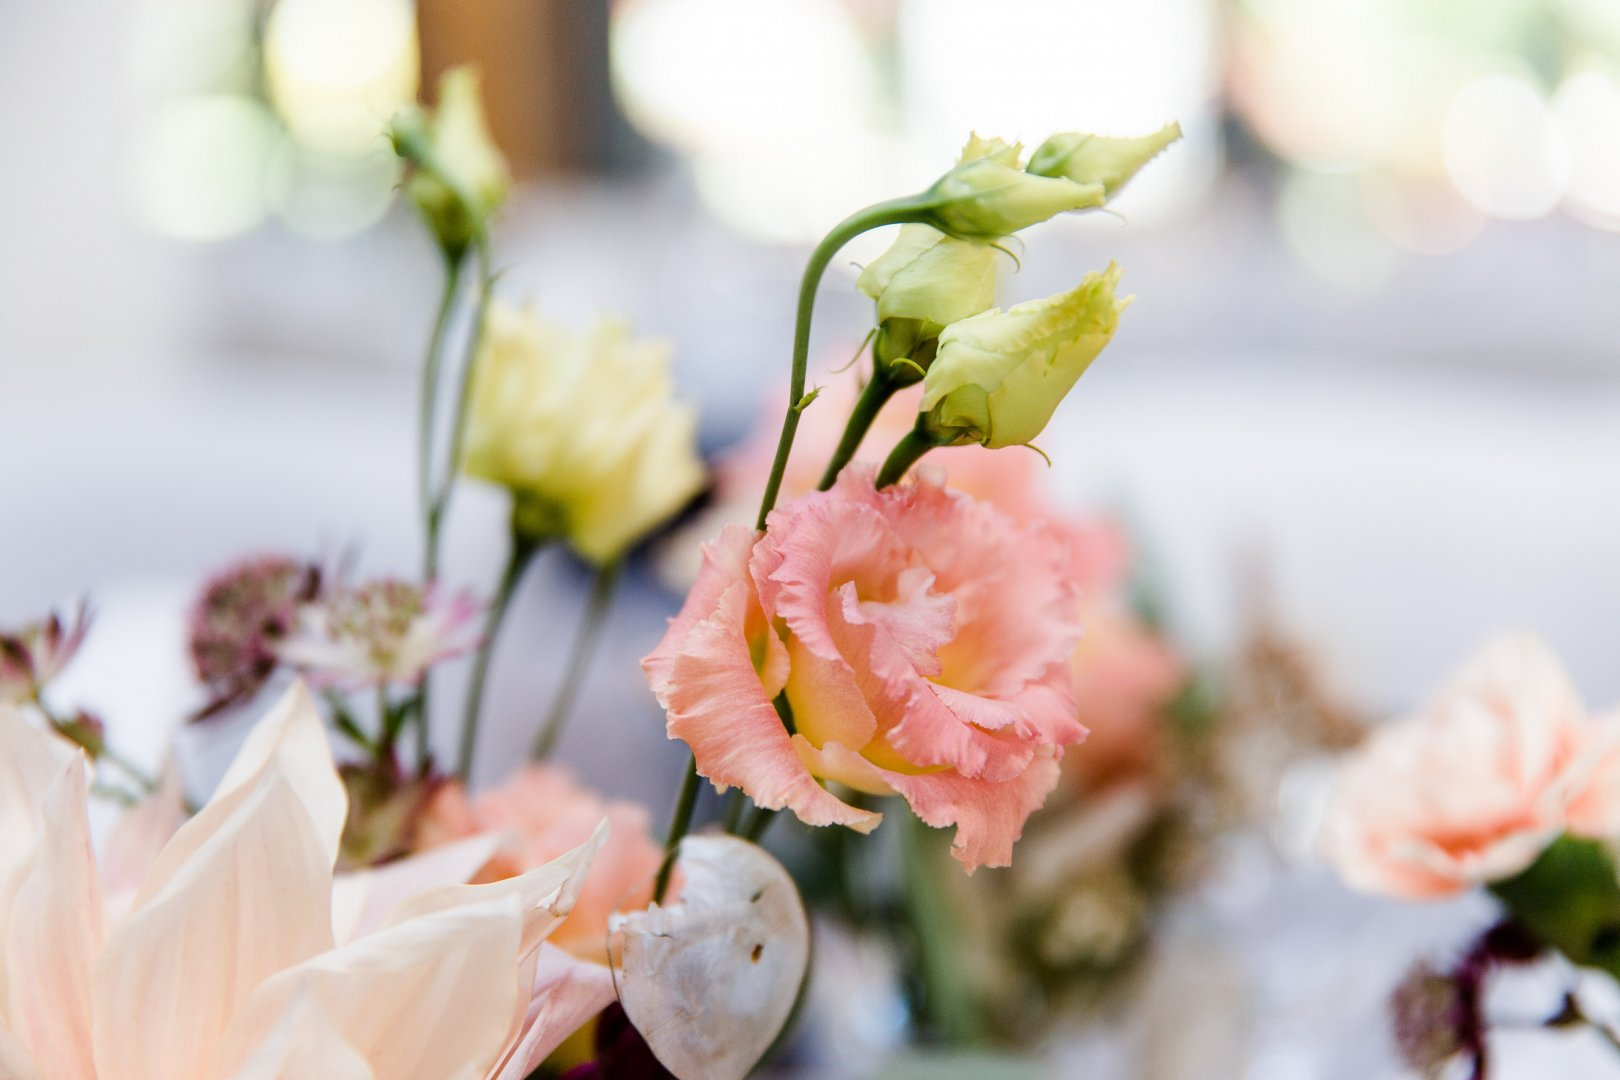 Flower Pink Flower Arranging Floral design Yellow Floristry Centrepiece Plant Petal Bouquet Cut flowers Spring Peach Wedding ceremony supply Artificial flower Ceremony Event Branch Garden roses Flowering plant Wedding reception Rose Wedding Rose family Peony Tableware